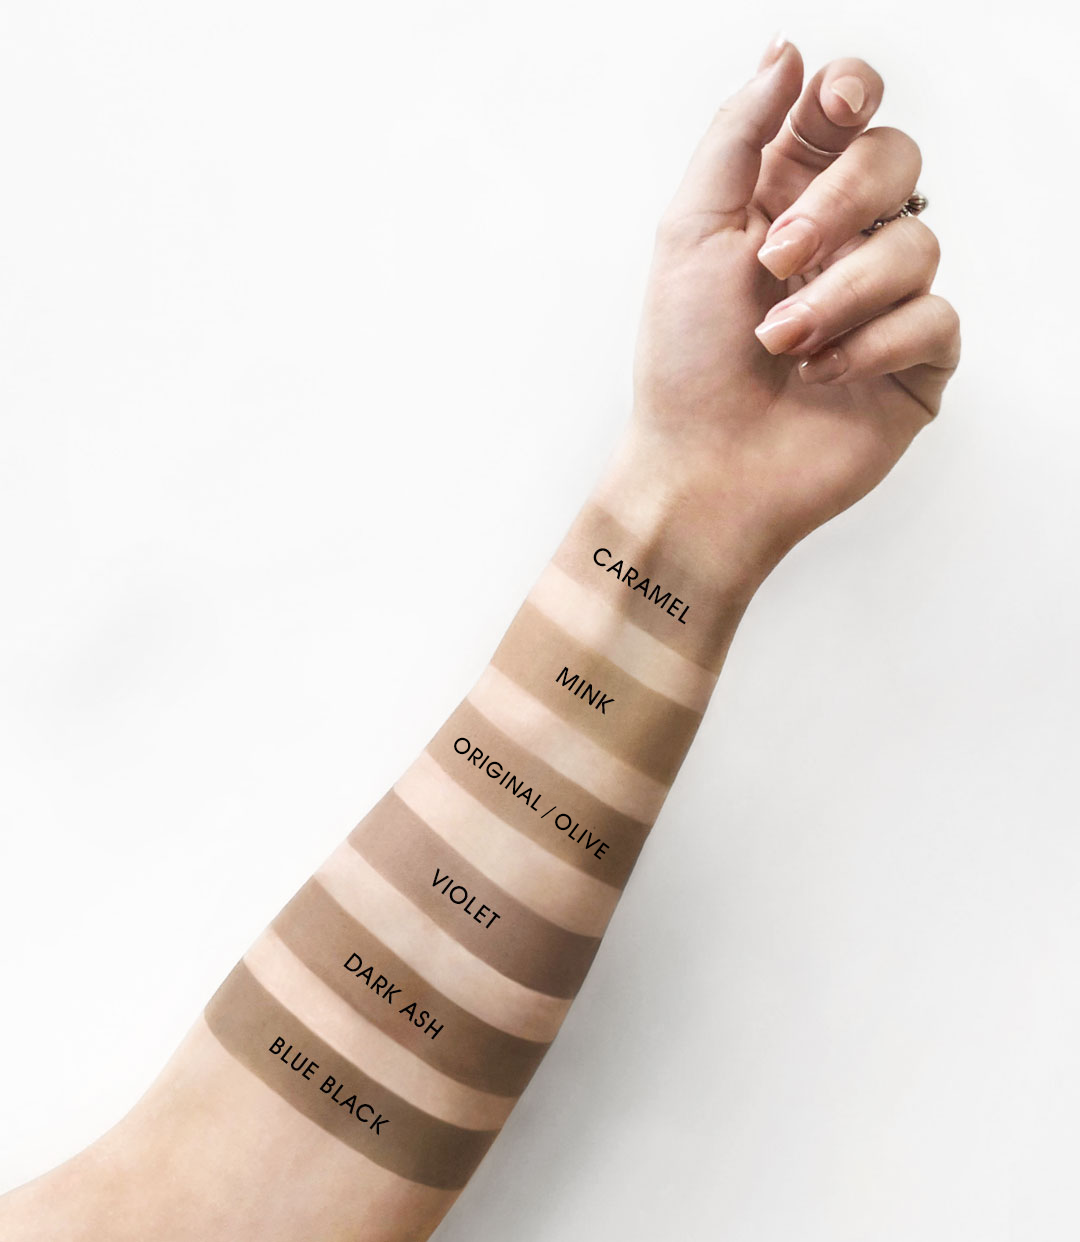 swatches-with-labelsV2